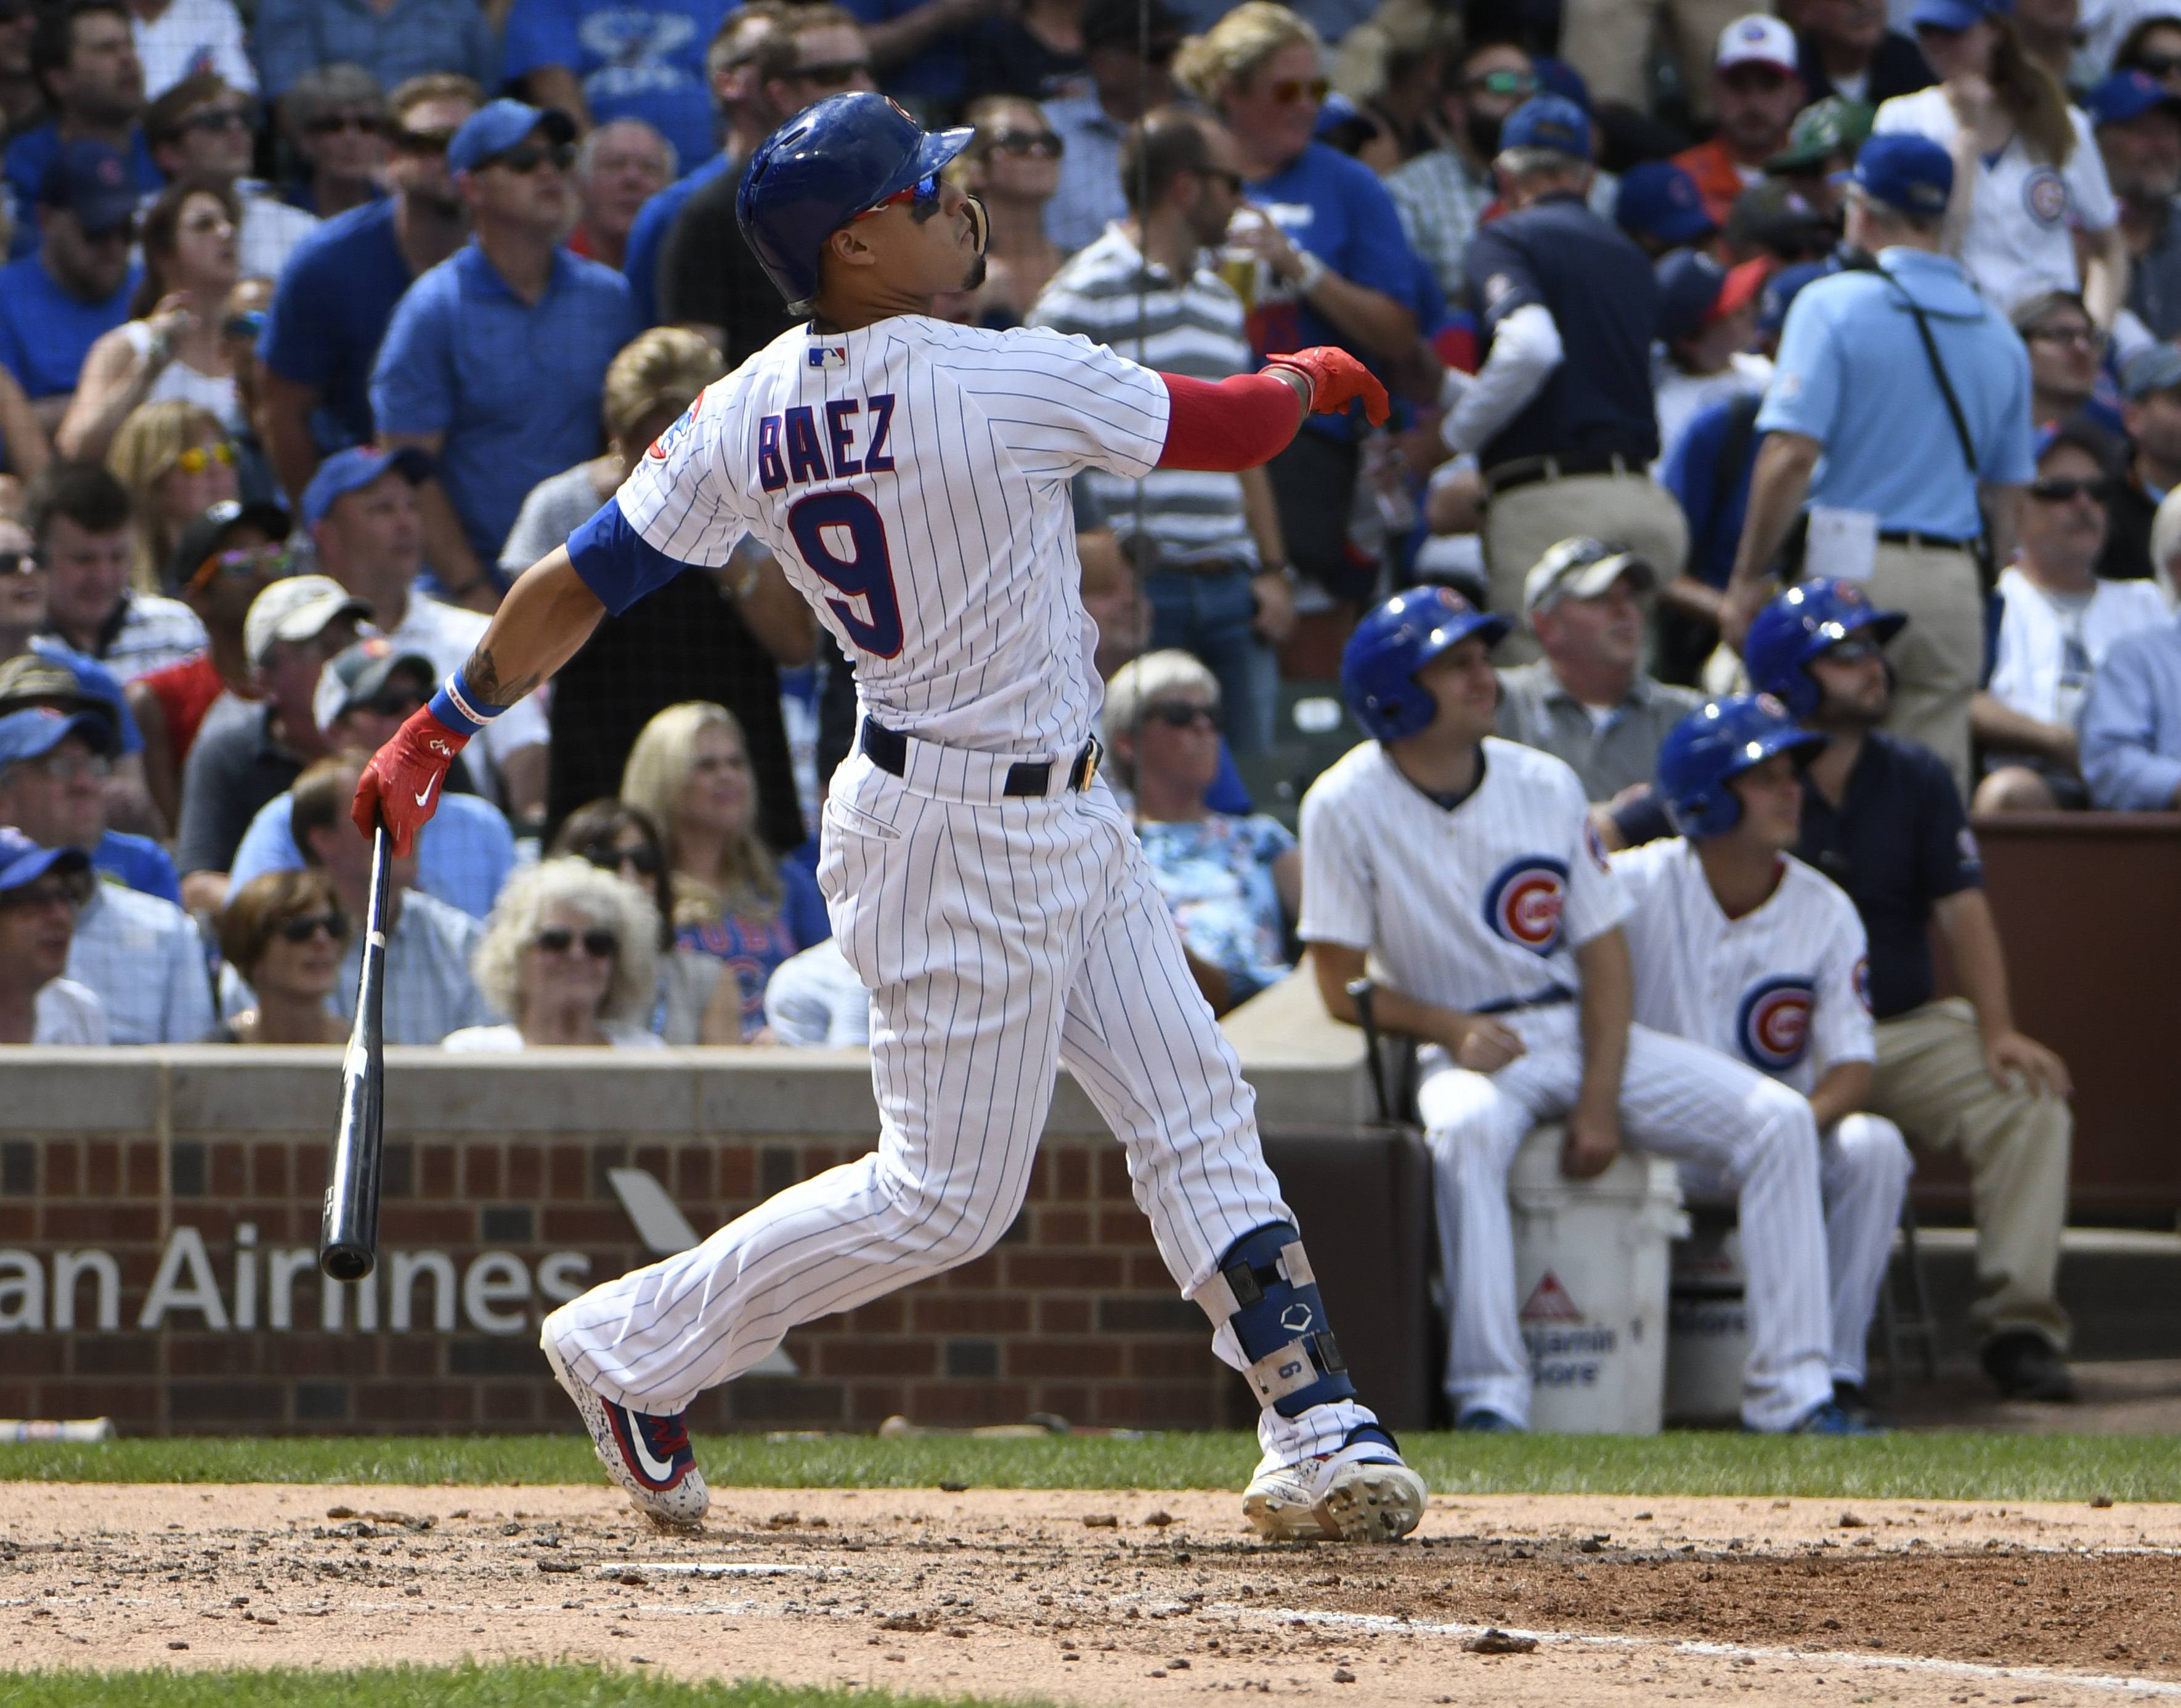 Cubs' Javier Baez watches his home run leave the yard during a 2017 game against the Reds. On Friday, the Cubs will exchange salary figures with seven of their players who are eligible for salary arbitration. The one to watch will be Baez, runner-up to Milwaukee's Christian Yelich for the National League Most Valuable Player award last year. Baez made $657,000 last season, and MLB Trade Rumors (mlbtradrumors.com) estimates he could get $7.1 million this year.